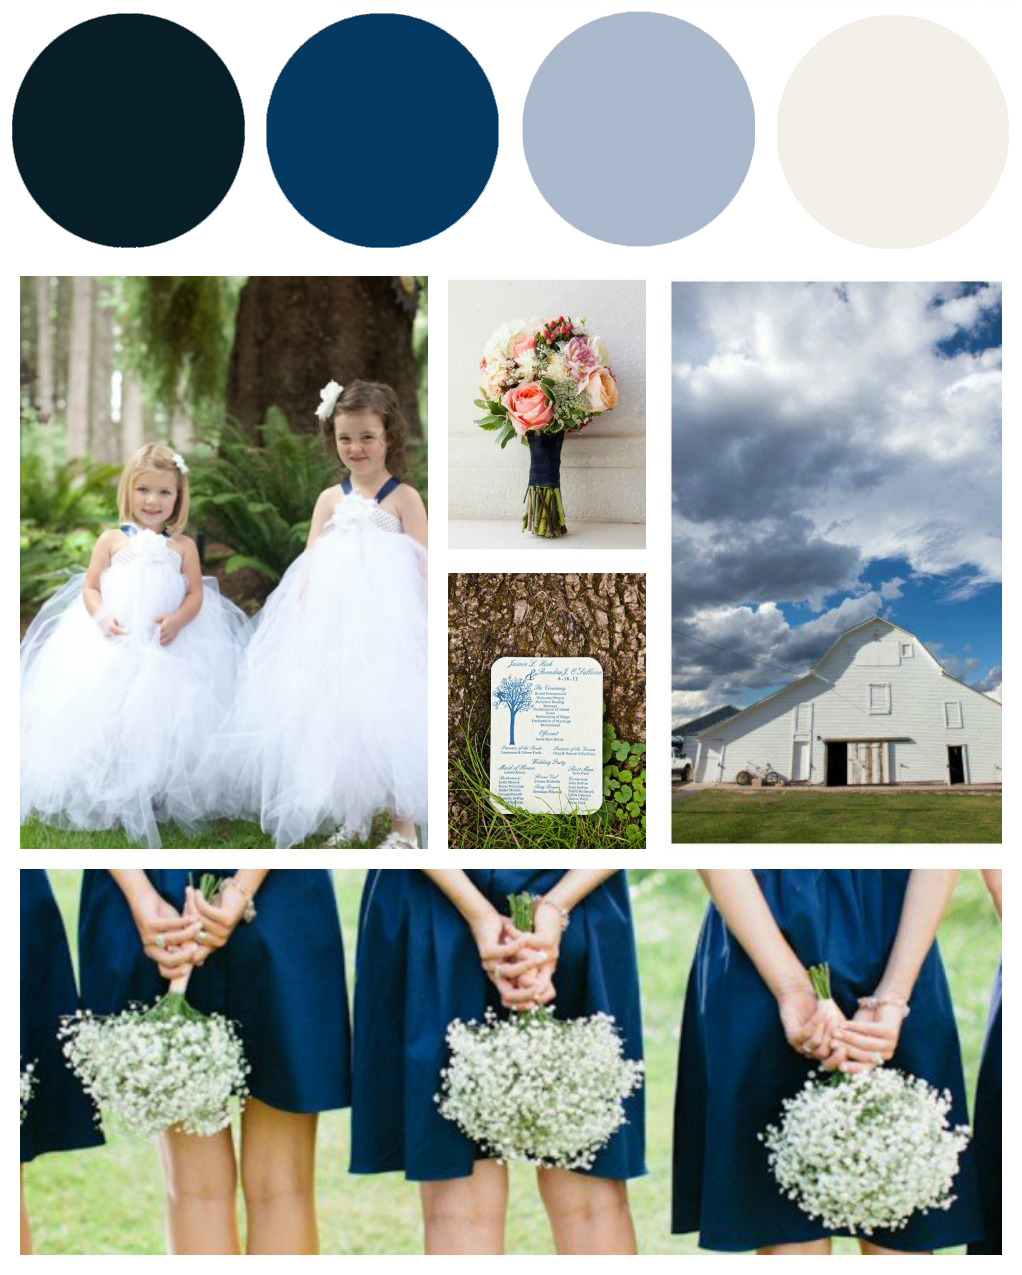 Wedding Ideas By Colour: Blue & White Wedding Colors